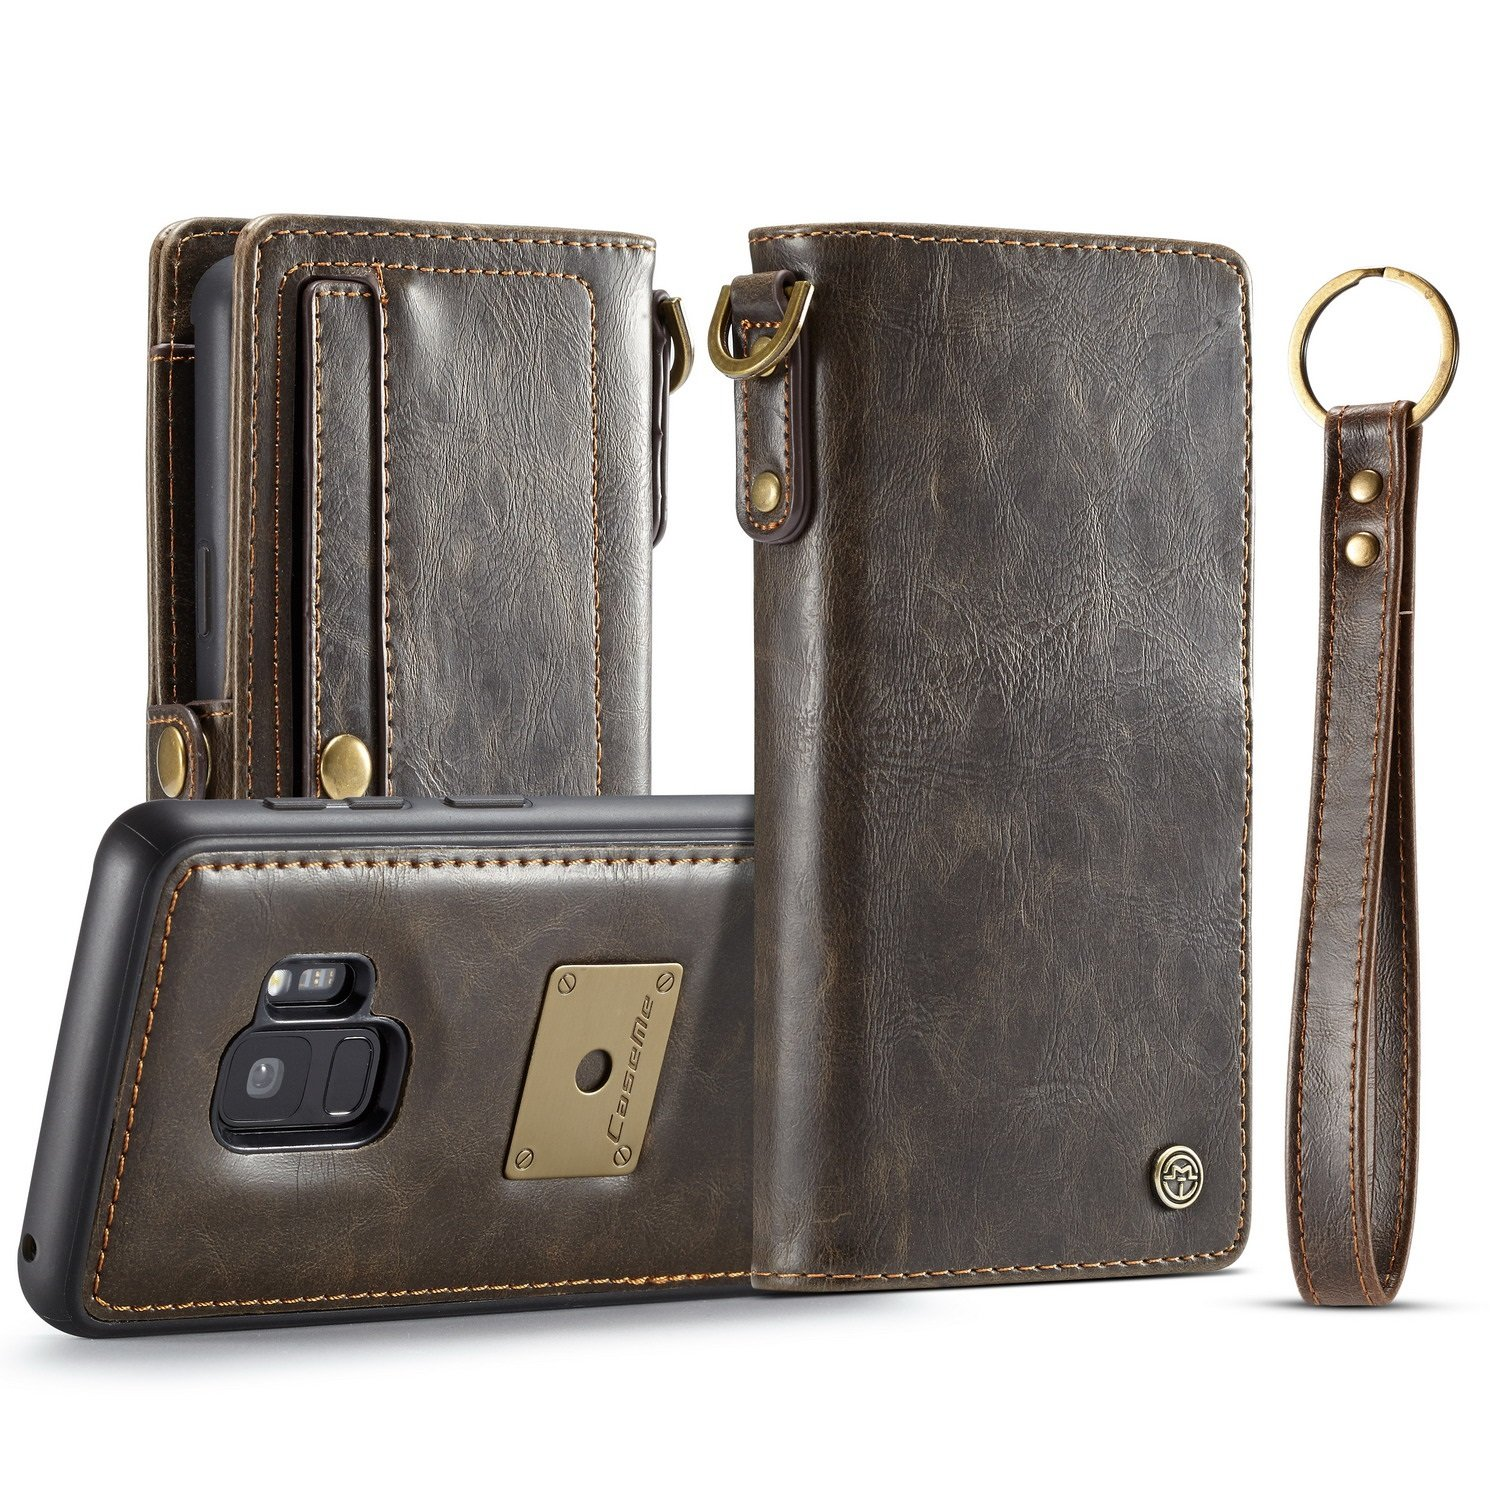 XIANGBAO-Case CaseMe For Samsung Galaxy S9 Wallet Case Premium Protective PU Leather Flip Magnetic Cover Quality Guarantee (Color : Brown) by XIANGBAO-Case